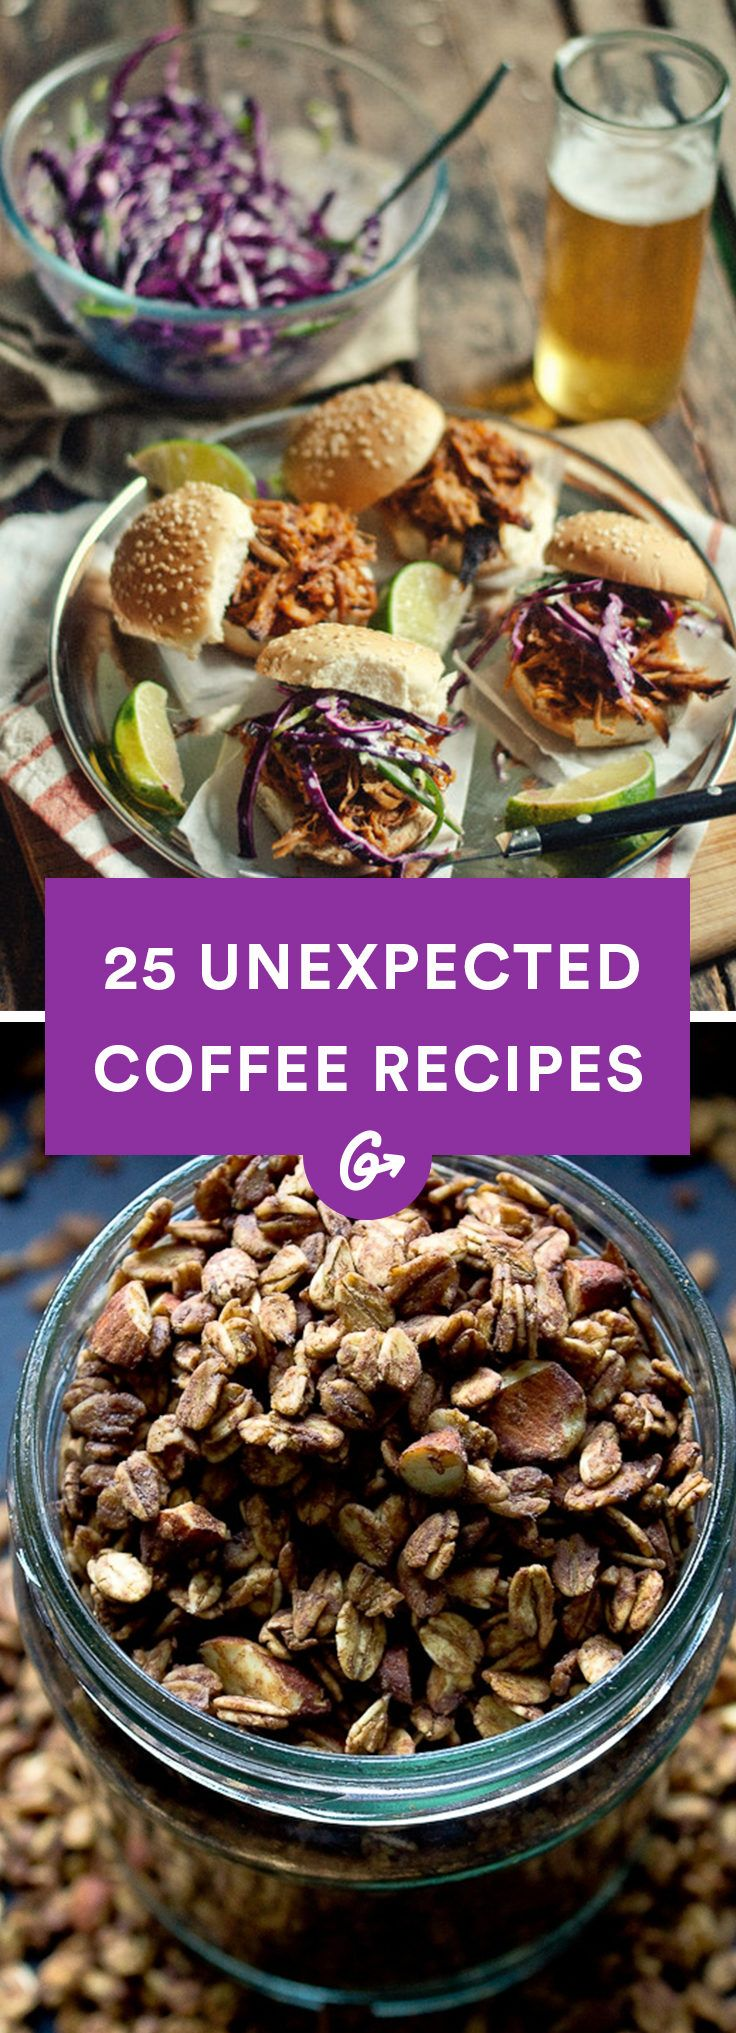 For many of us, coffee's the only reason to get out of bed in the morning. It's also pretty darn tasty any other time of day. Try one of these coffee-based recipes to see for yourself.  #healthy #coffee #recipes http://greatist.com/health/healthy-coffee-recipes